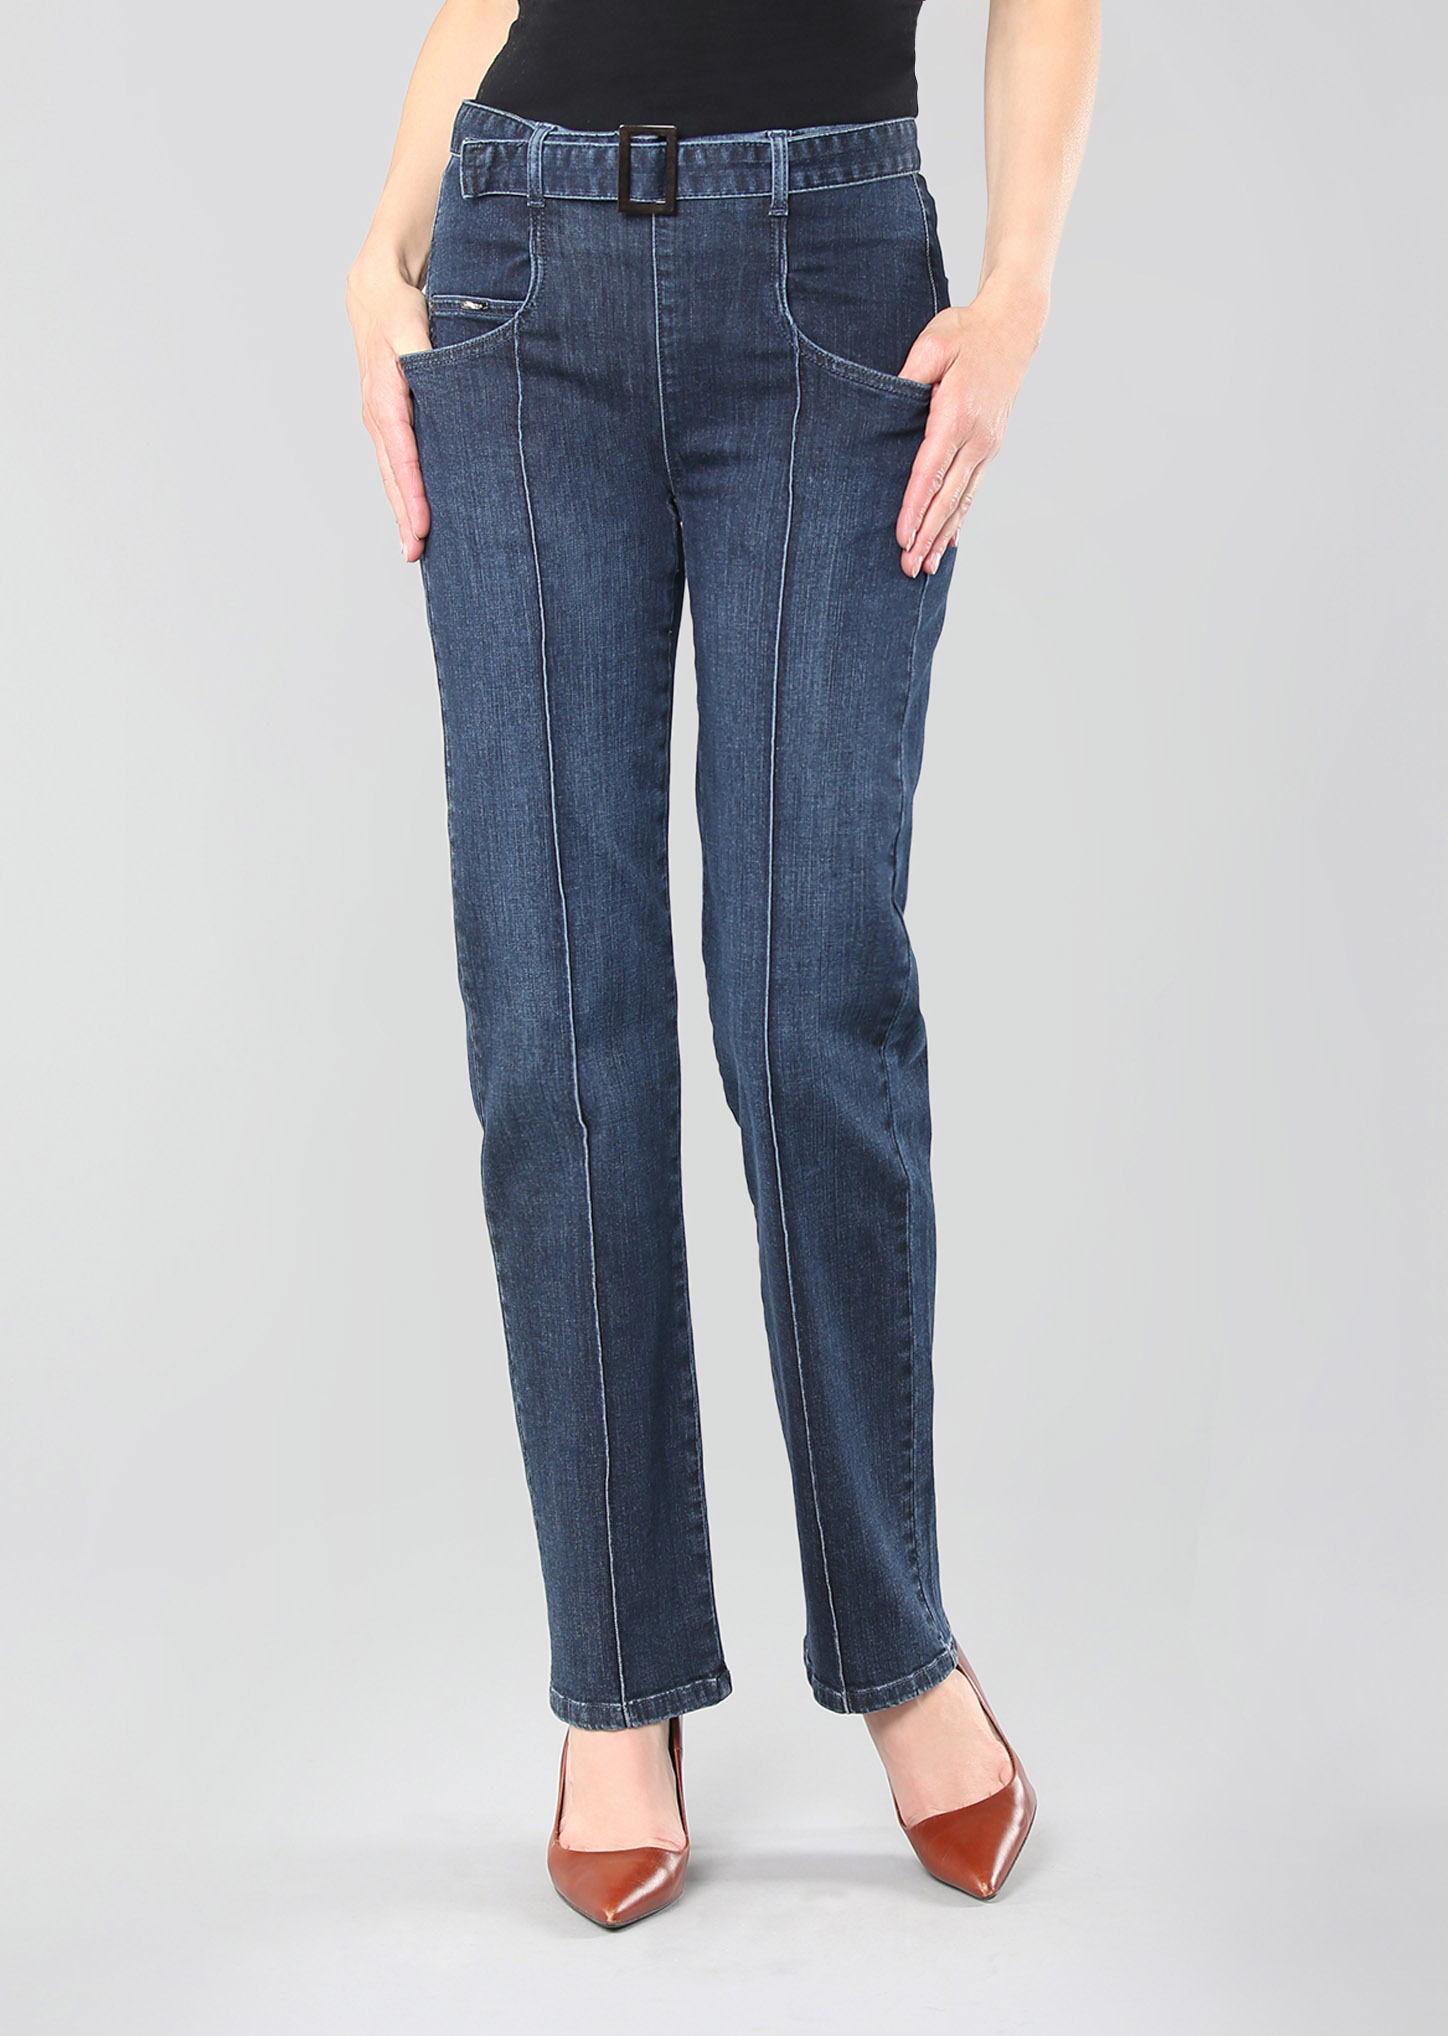 Lisette L. Straight Jeans Style 455638 Betty Denim Belted High Rise Color Denim Blue